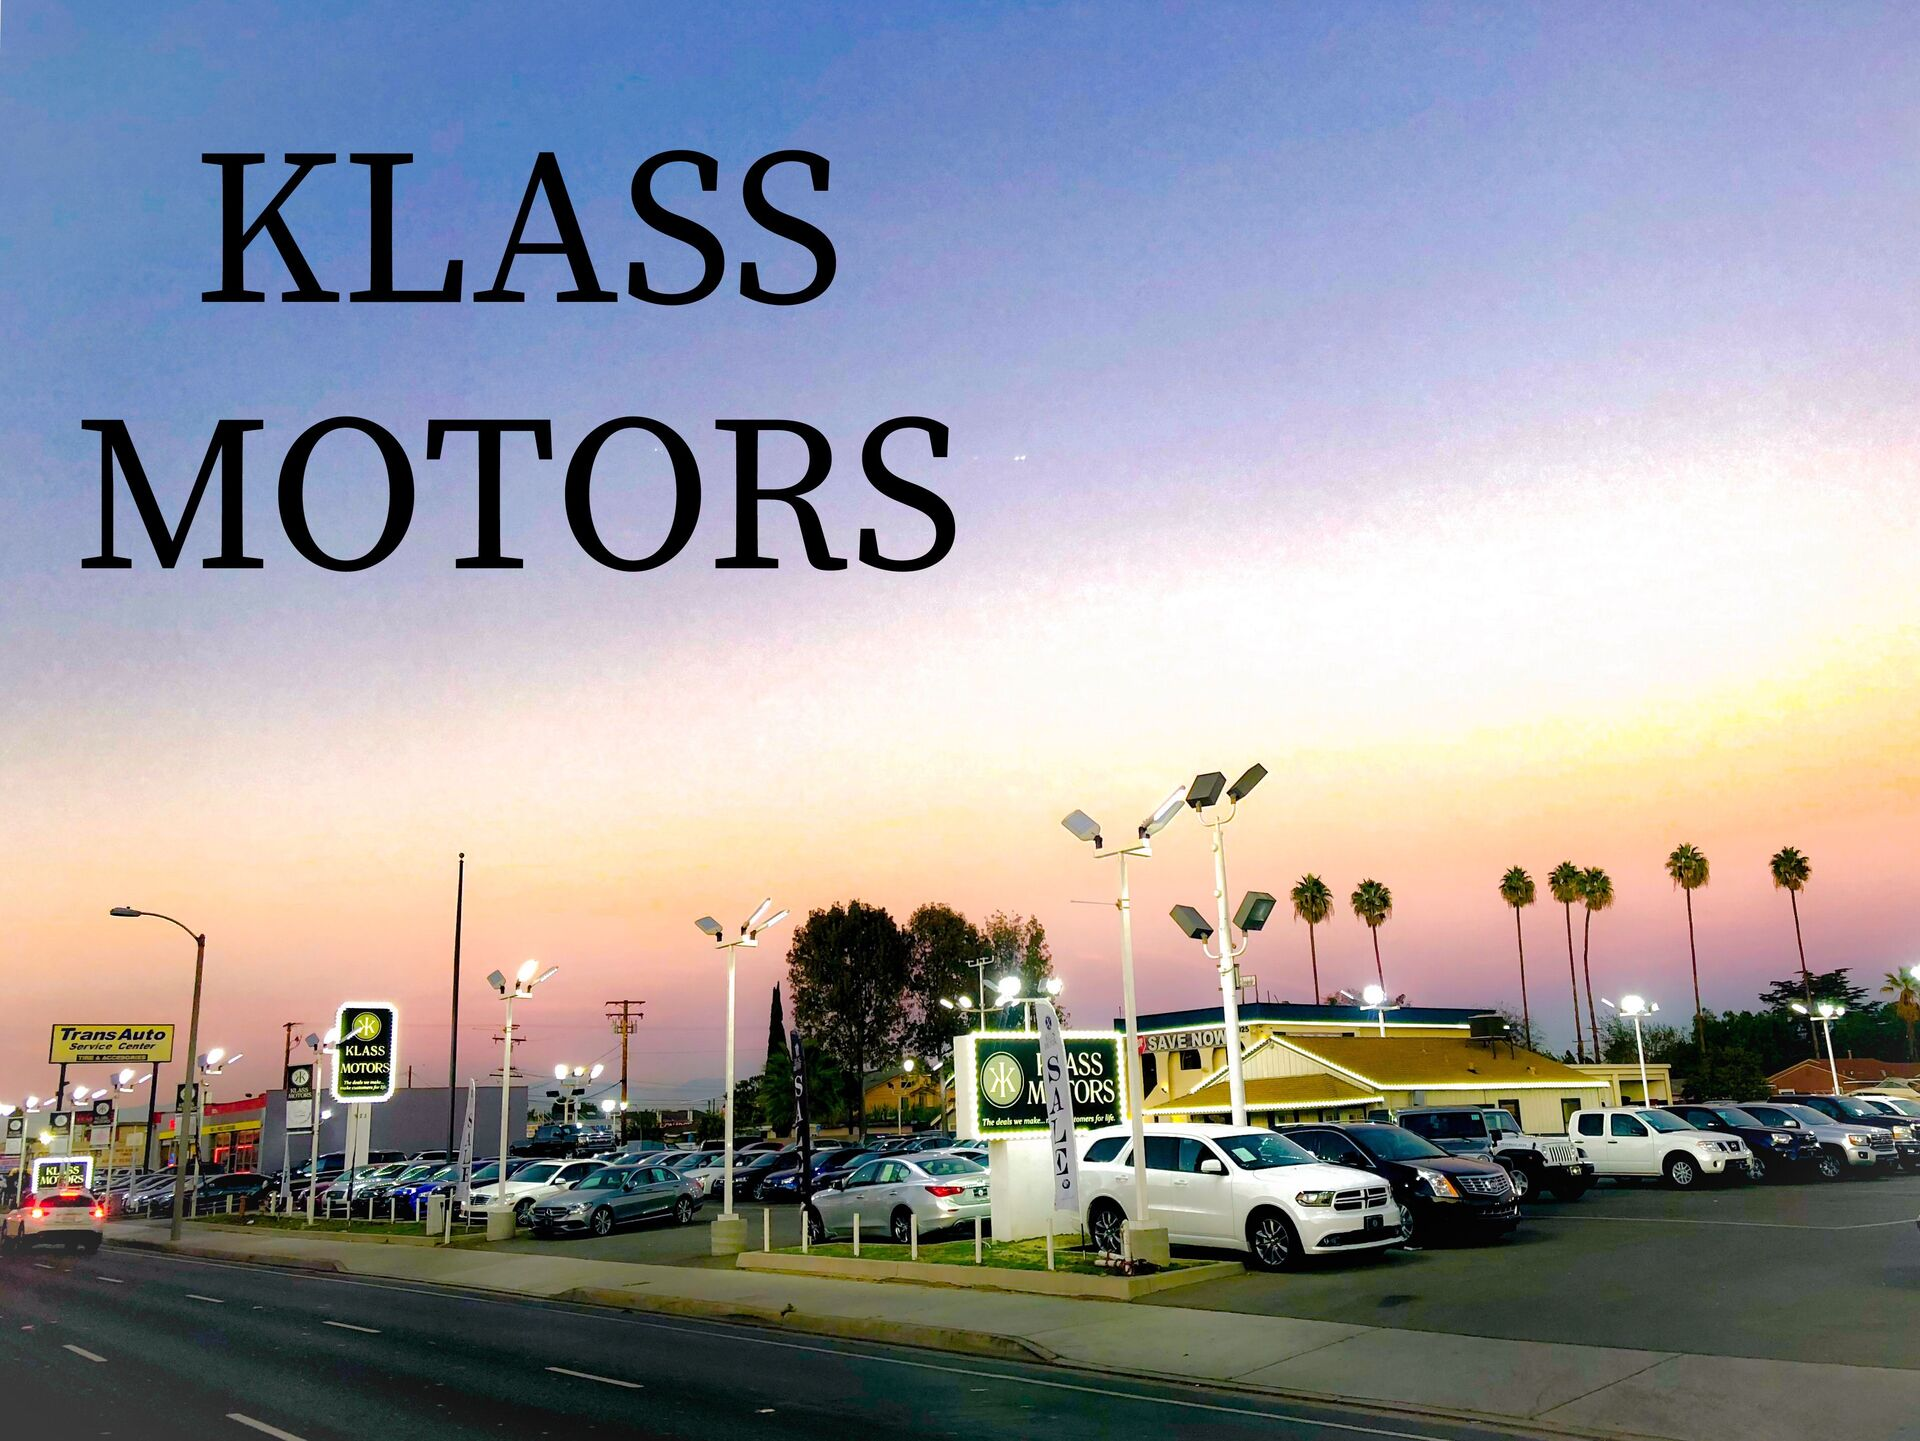 Klass Motors